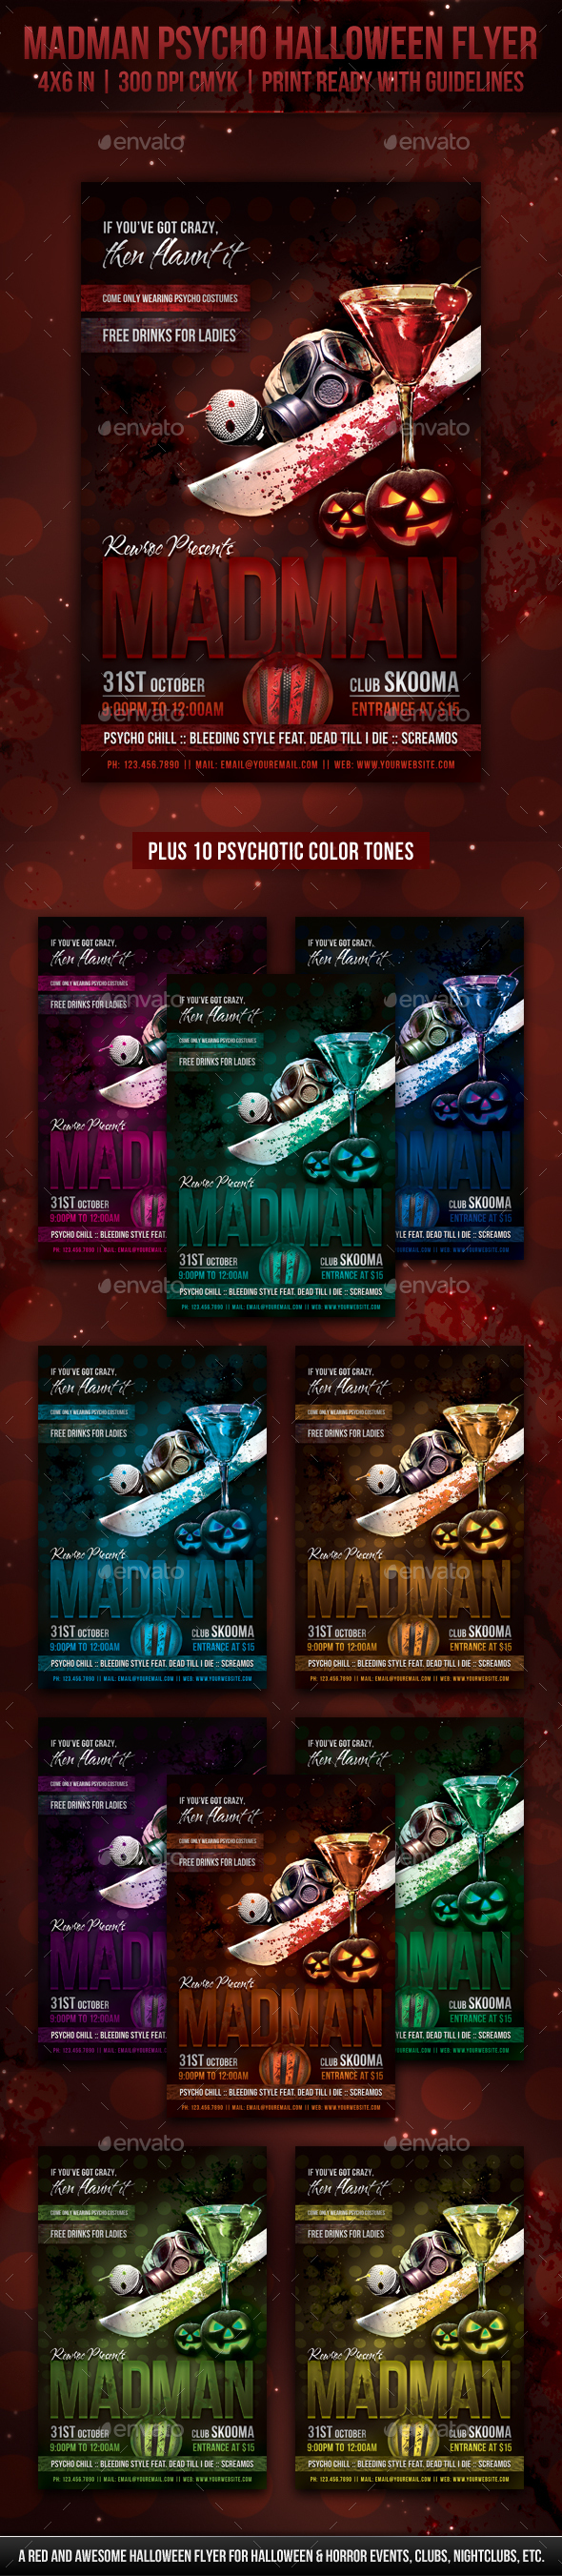 GraphicRiver Madman Psycho Halloween Flyer 20648678